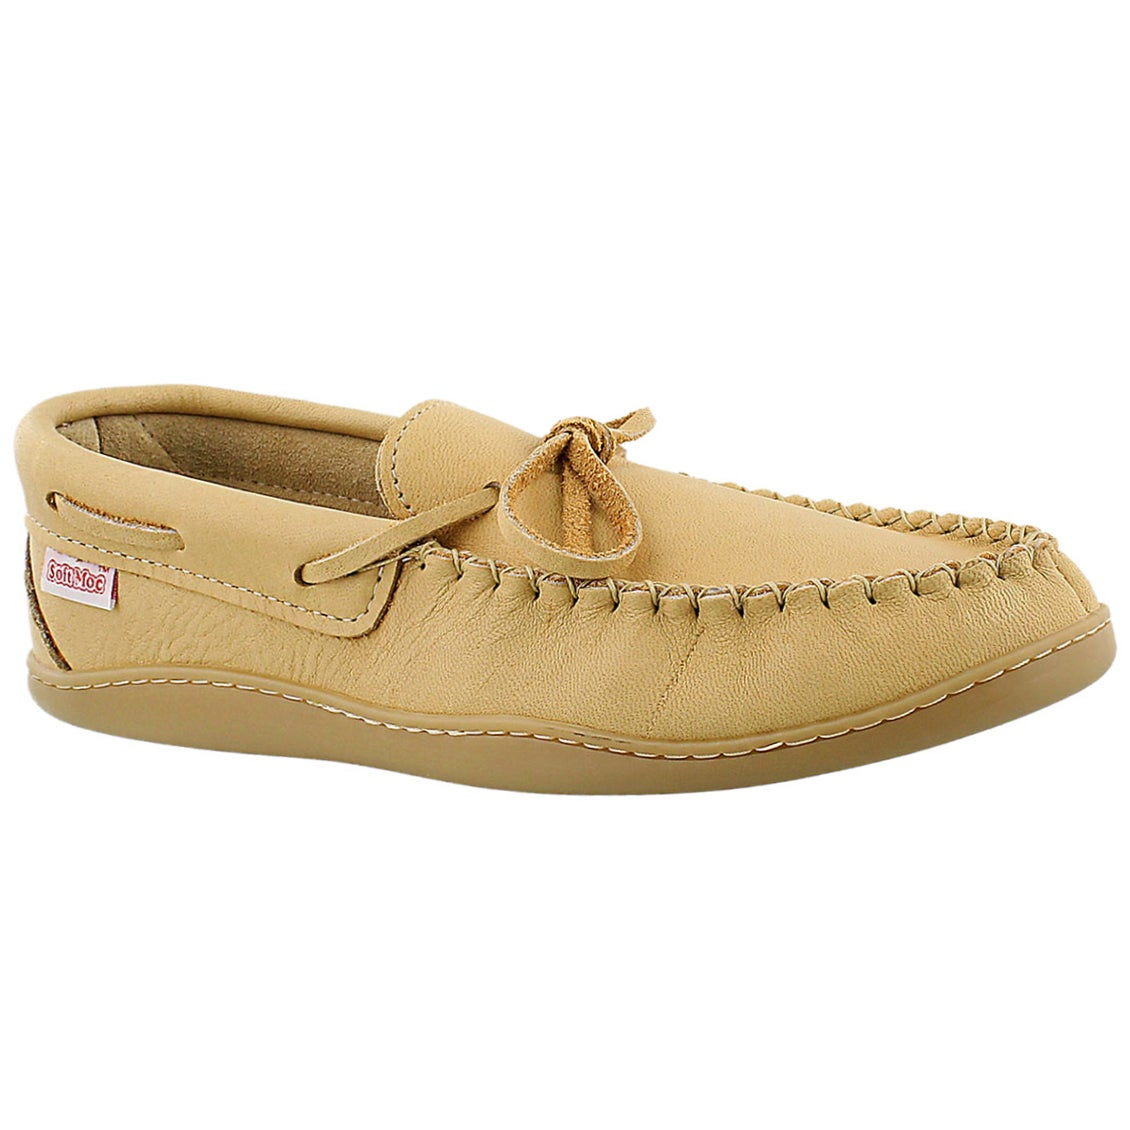 Men's SFKB841 natural moose moccasins